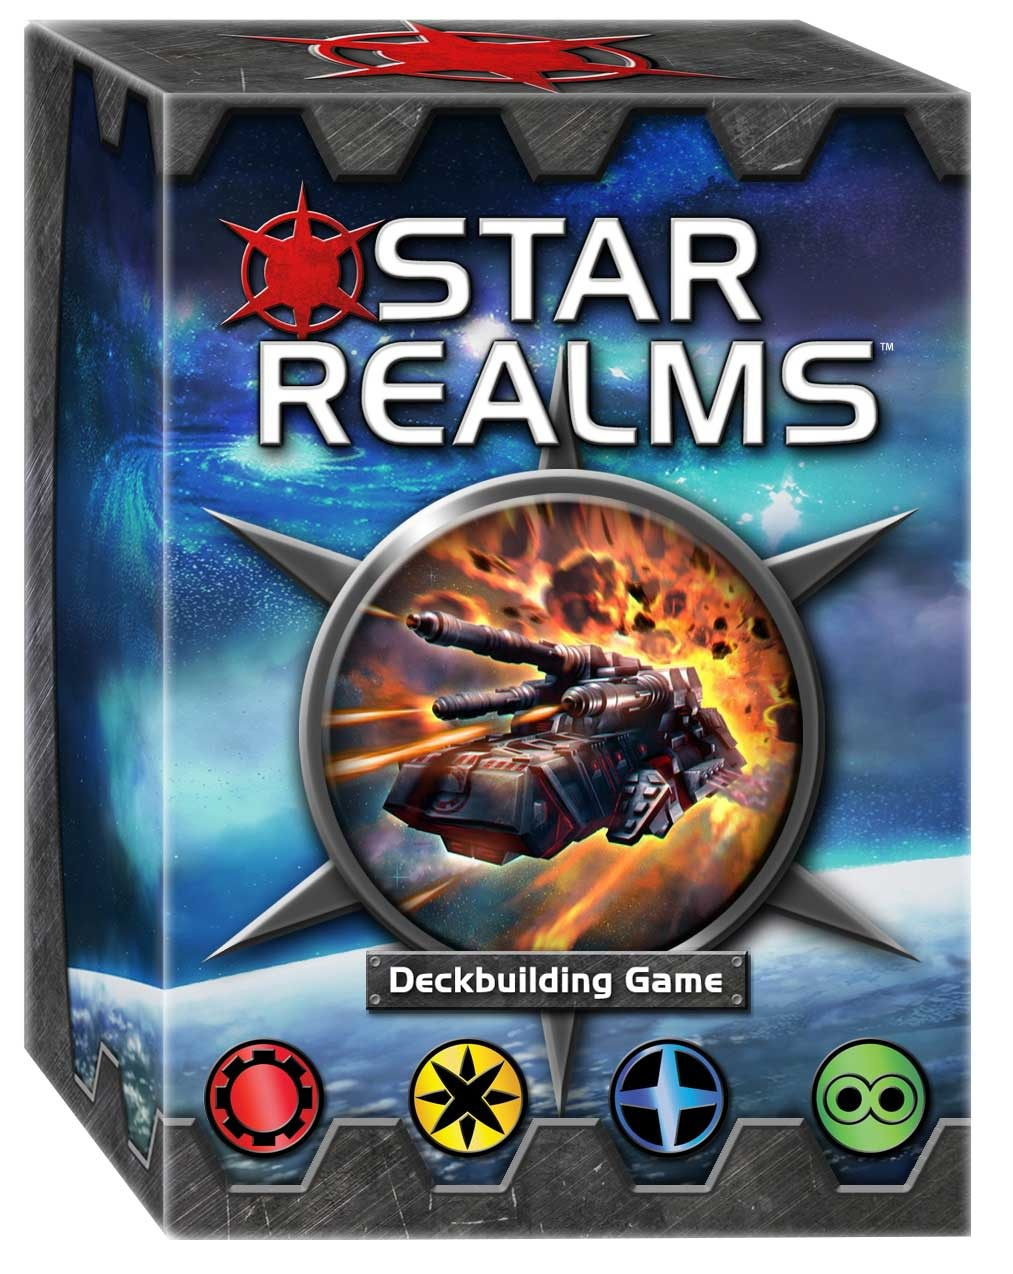 White Wizard Games STAR REALMS DECKBUILDING GAME (English)